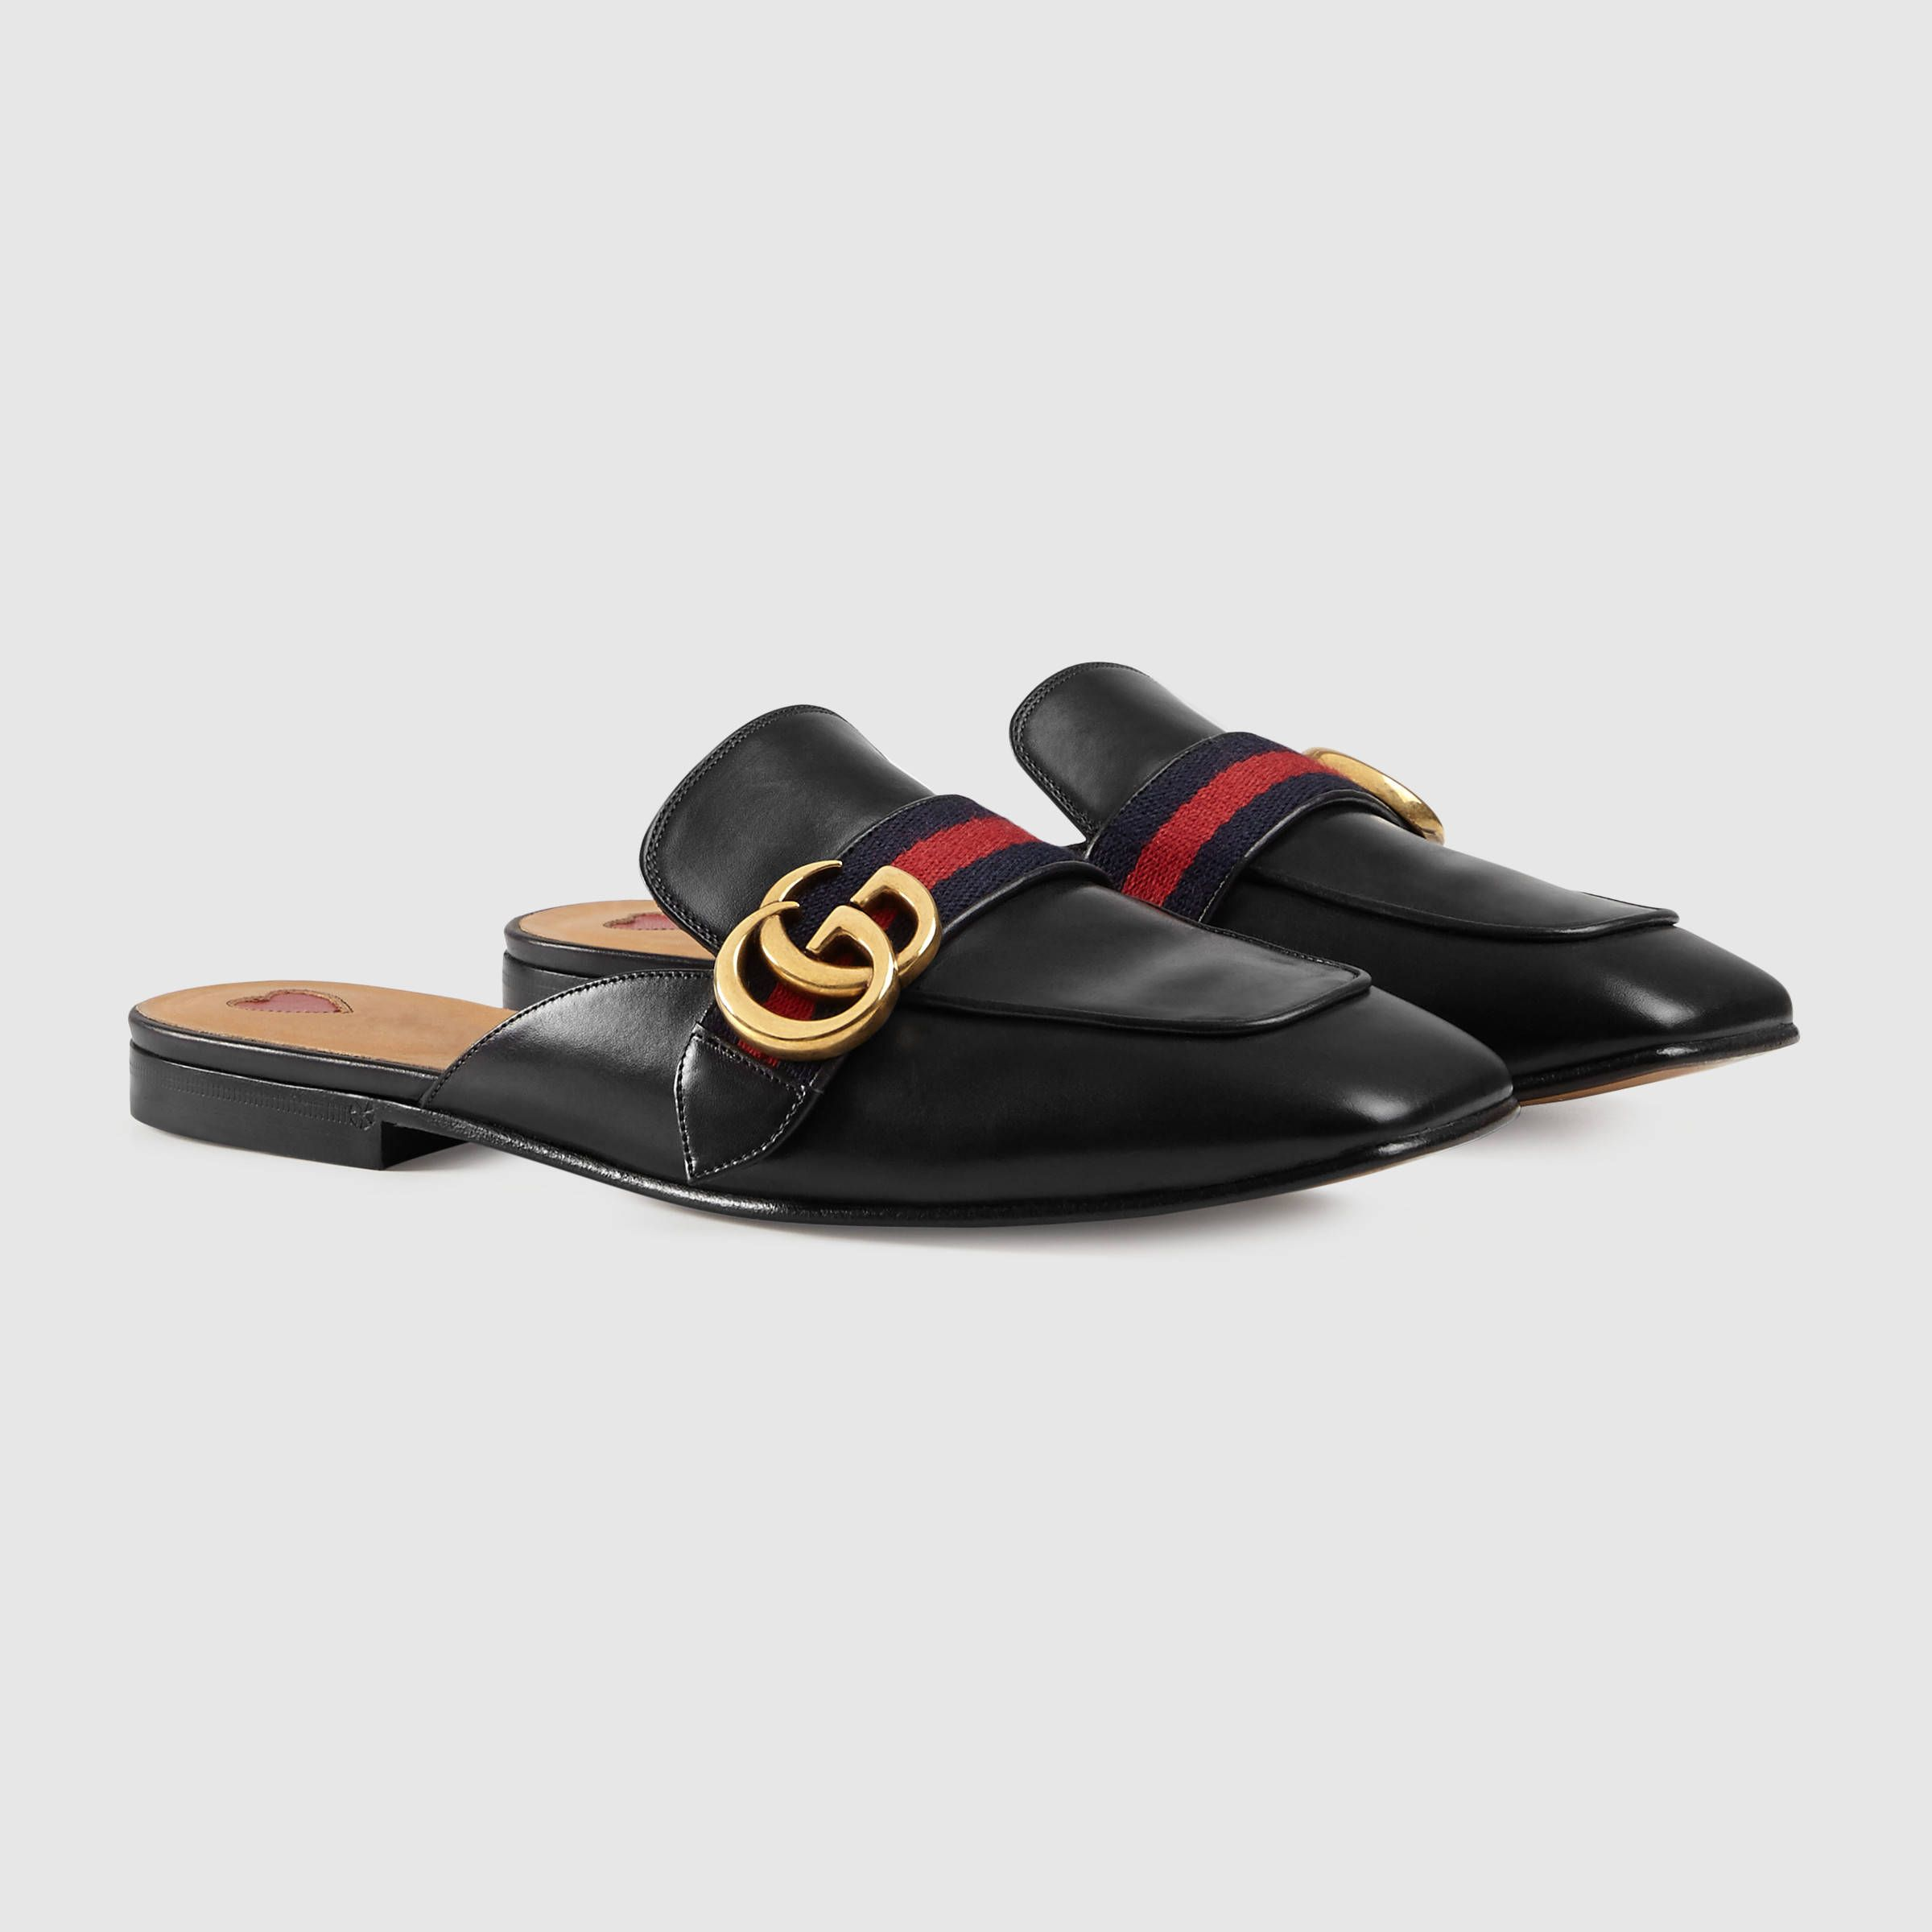 de6f38d36d1 Leather Slipper - Gucci